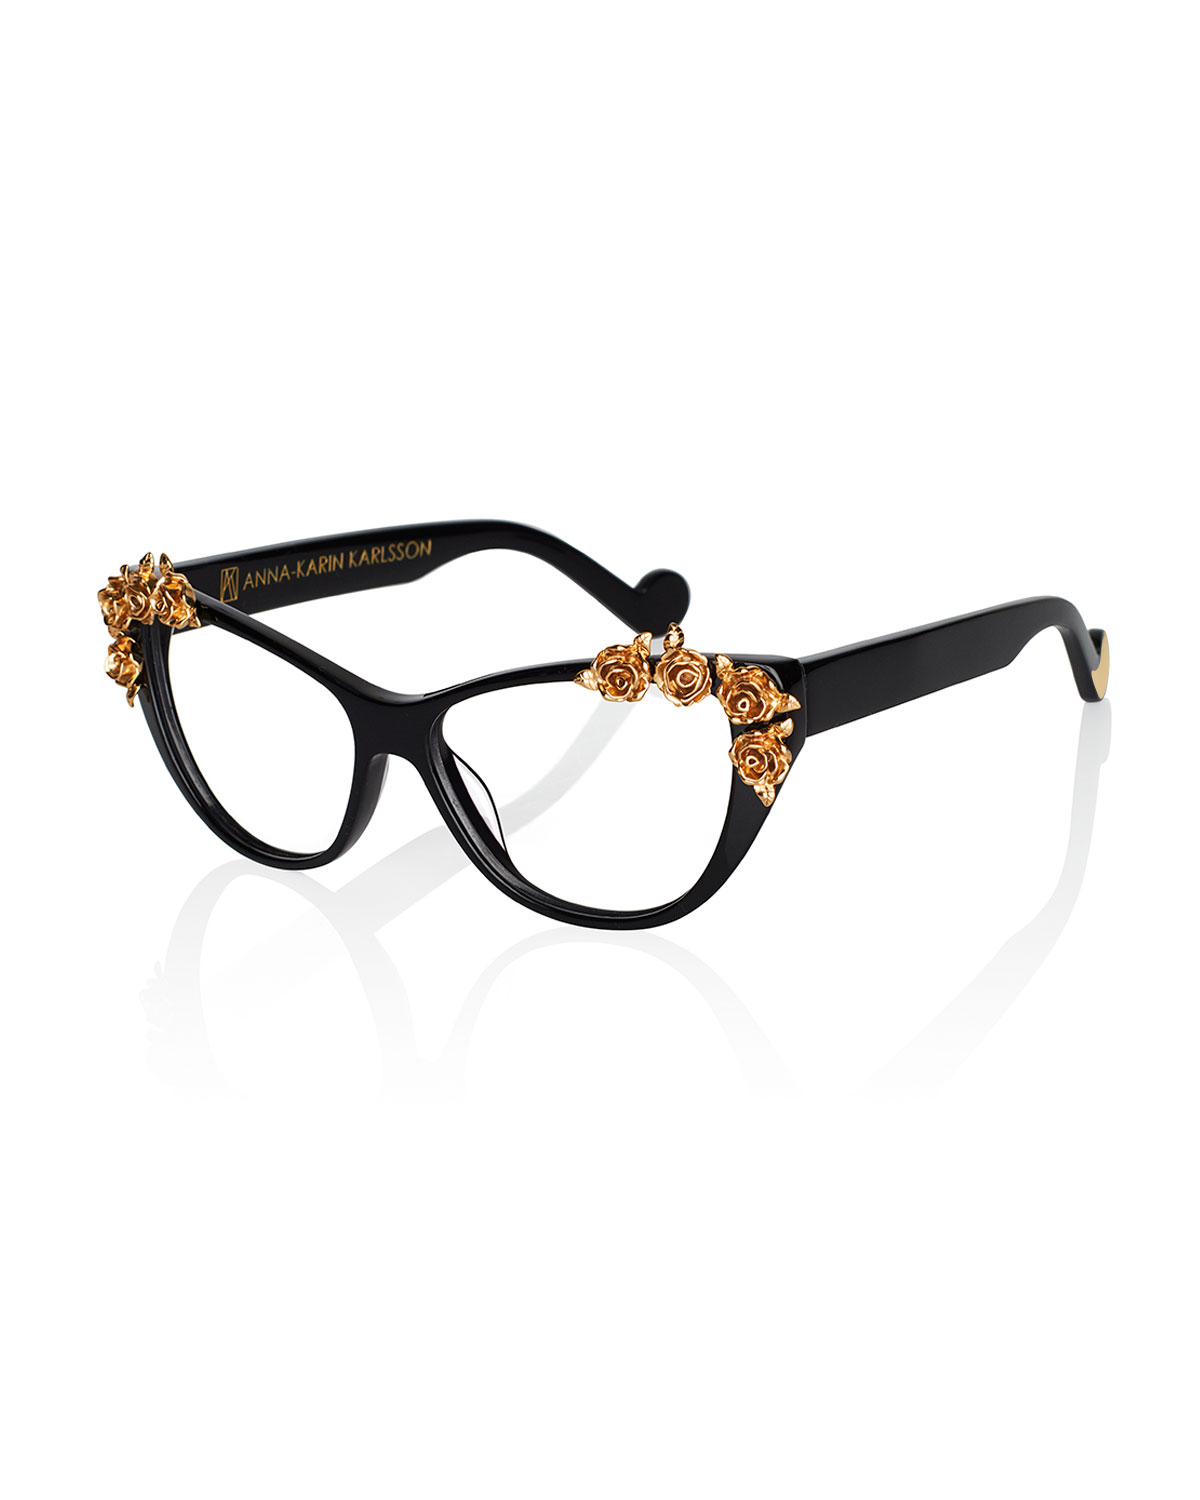 Anna Karin Karlsson Lily Love glasses Many Kinds Of Sale Online Outlet Amazing Price lWqRc2wG